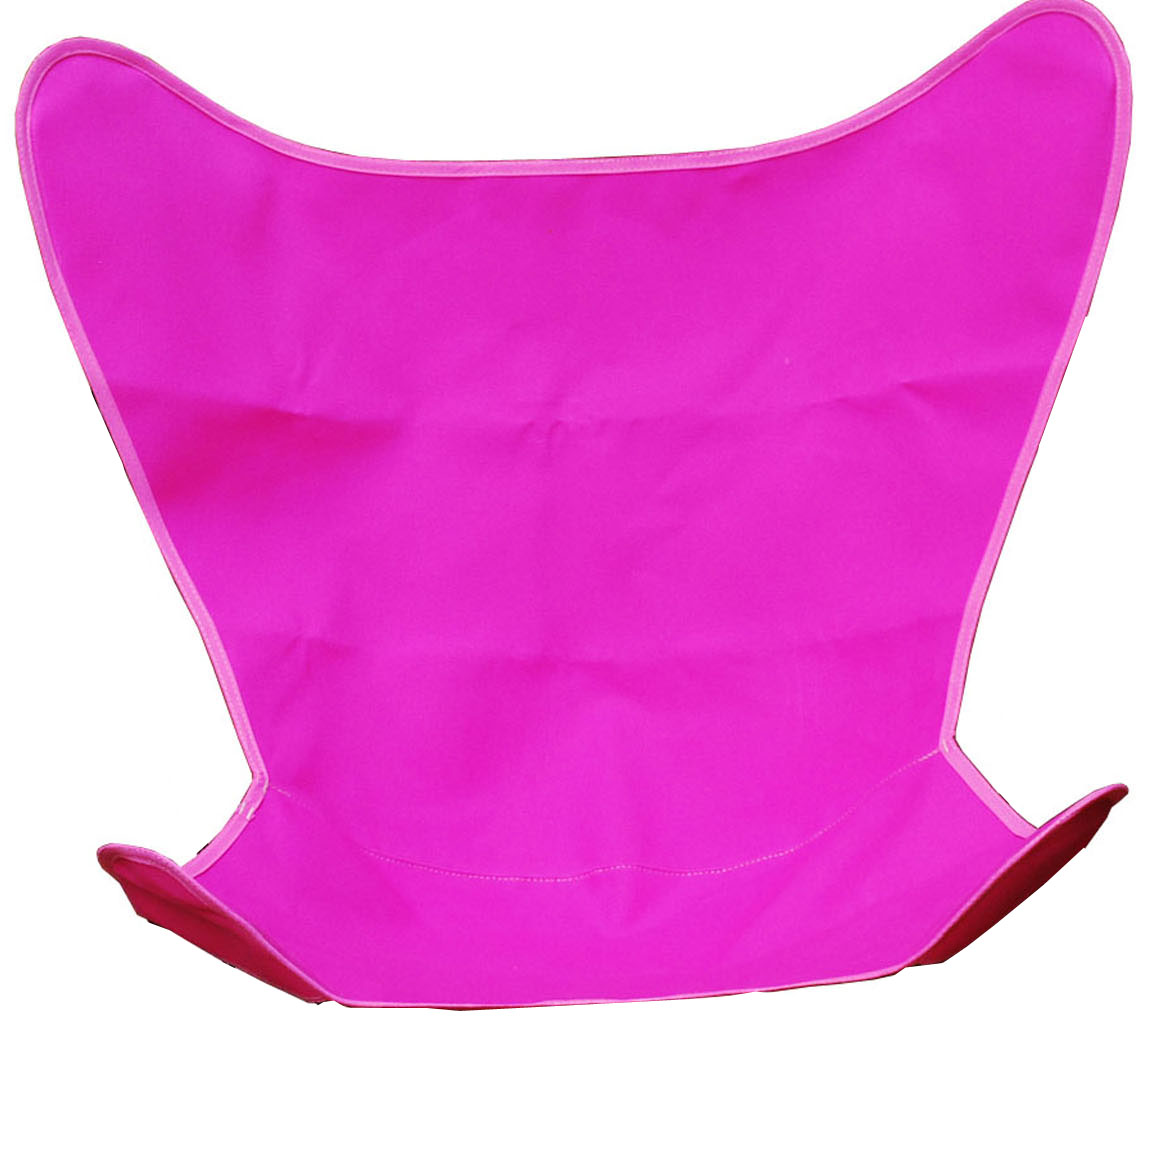 Replacement Cover for Butterfly Chair - Pink